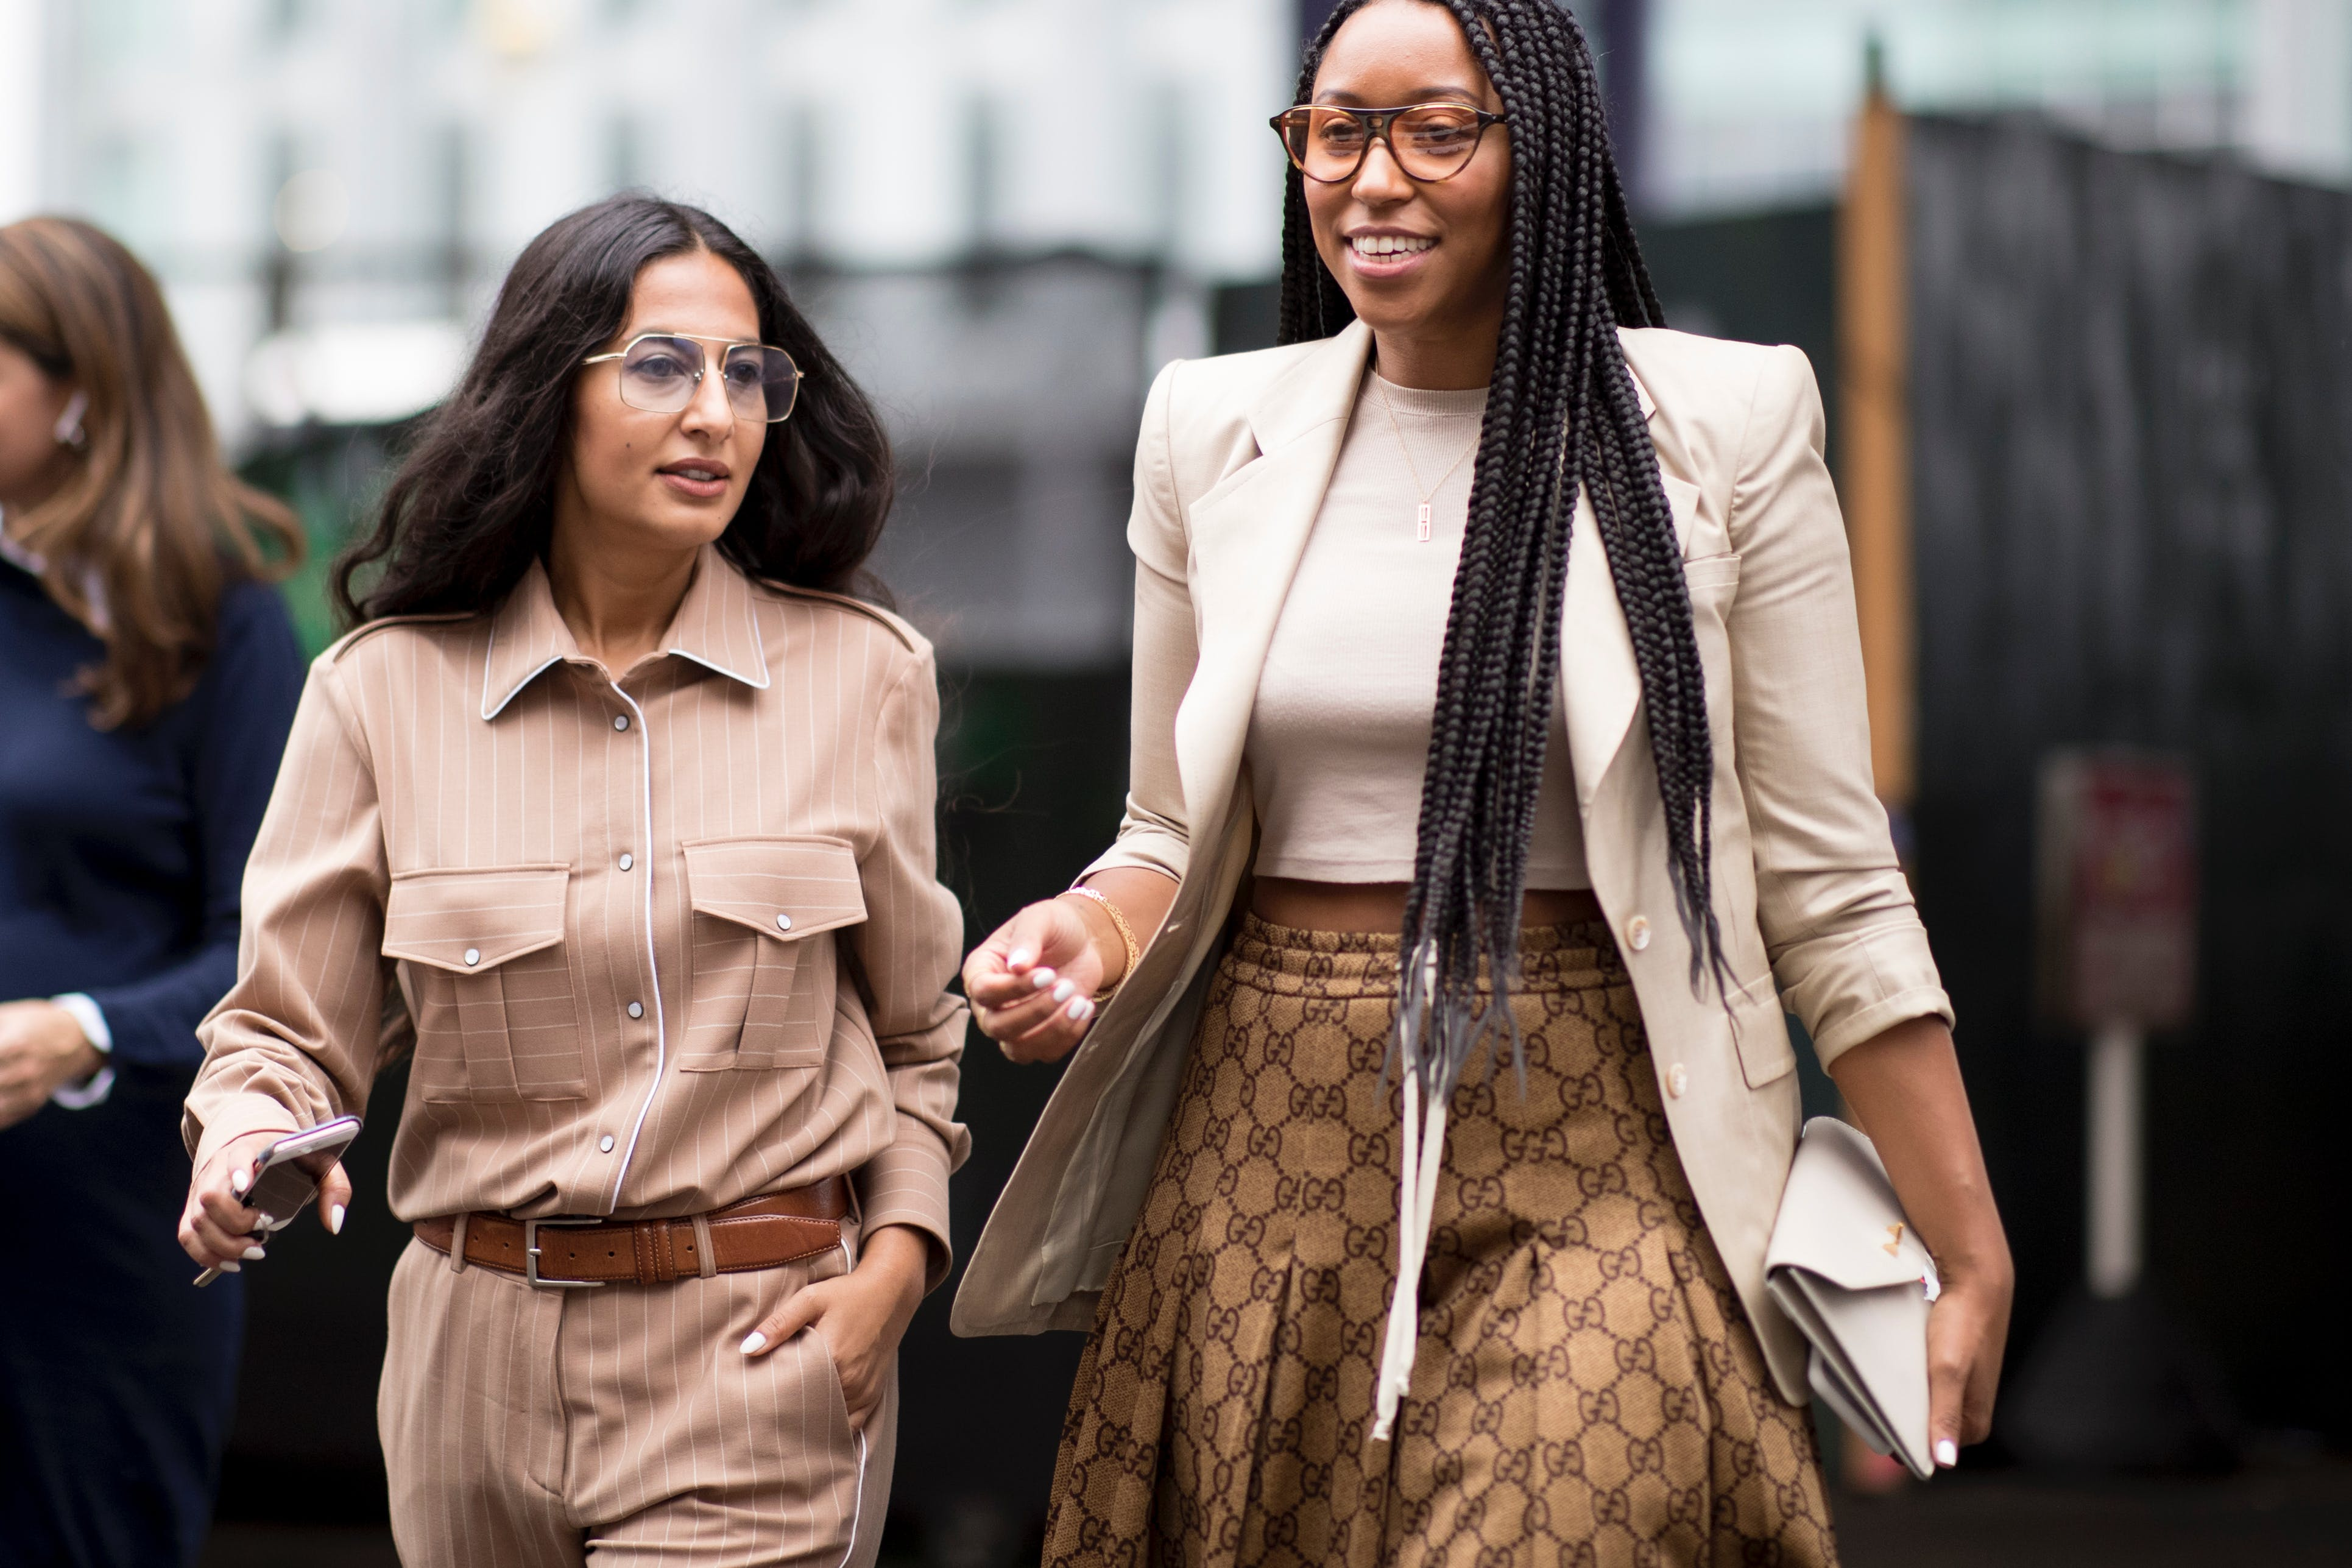 5 Outfits To Wear With Sneakers That Are Polished Enough For Work